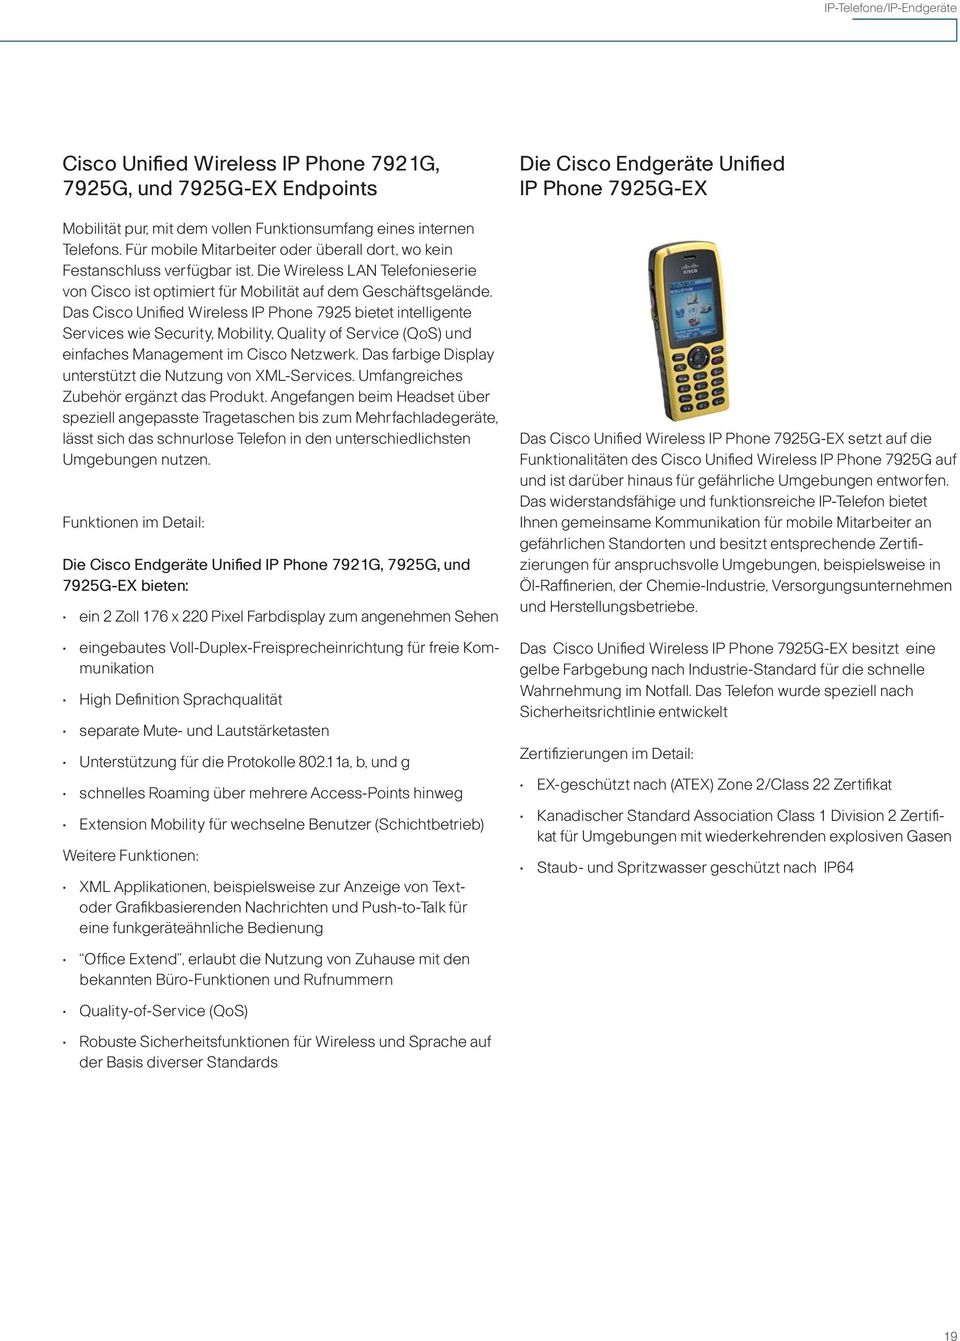 Das Cisco Unified Wireless IP Phone 7925 bietet intelligente Services wie Security, Mobility, Quality of Service (QoS) und einfaches Management im Cisco Netzwerk.